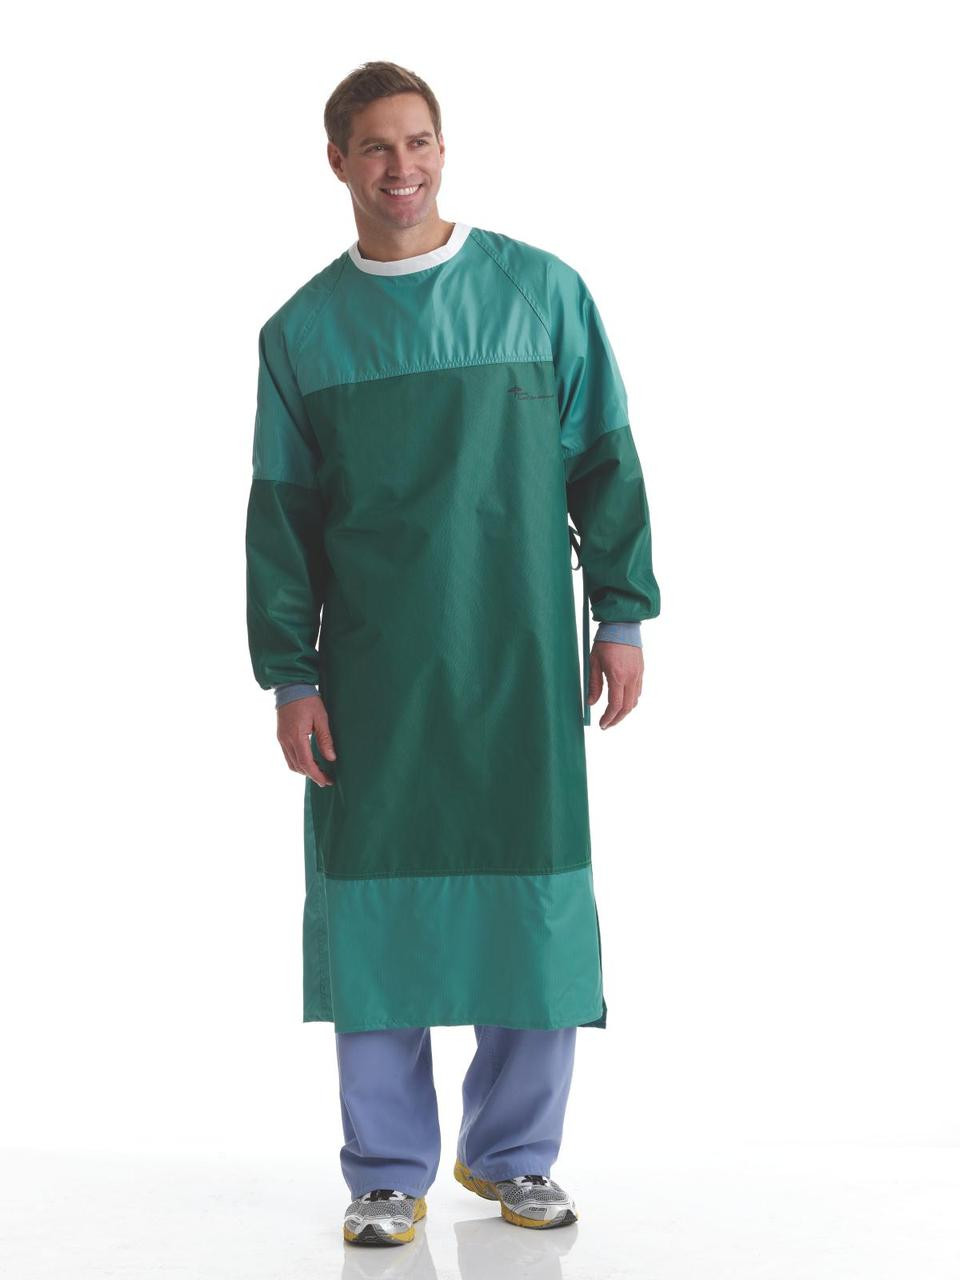 Medline Level 3 Surgical Gowns with GORE Fabric, Panel Coverage ...